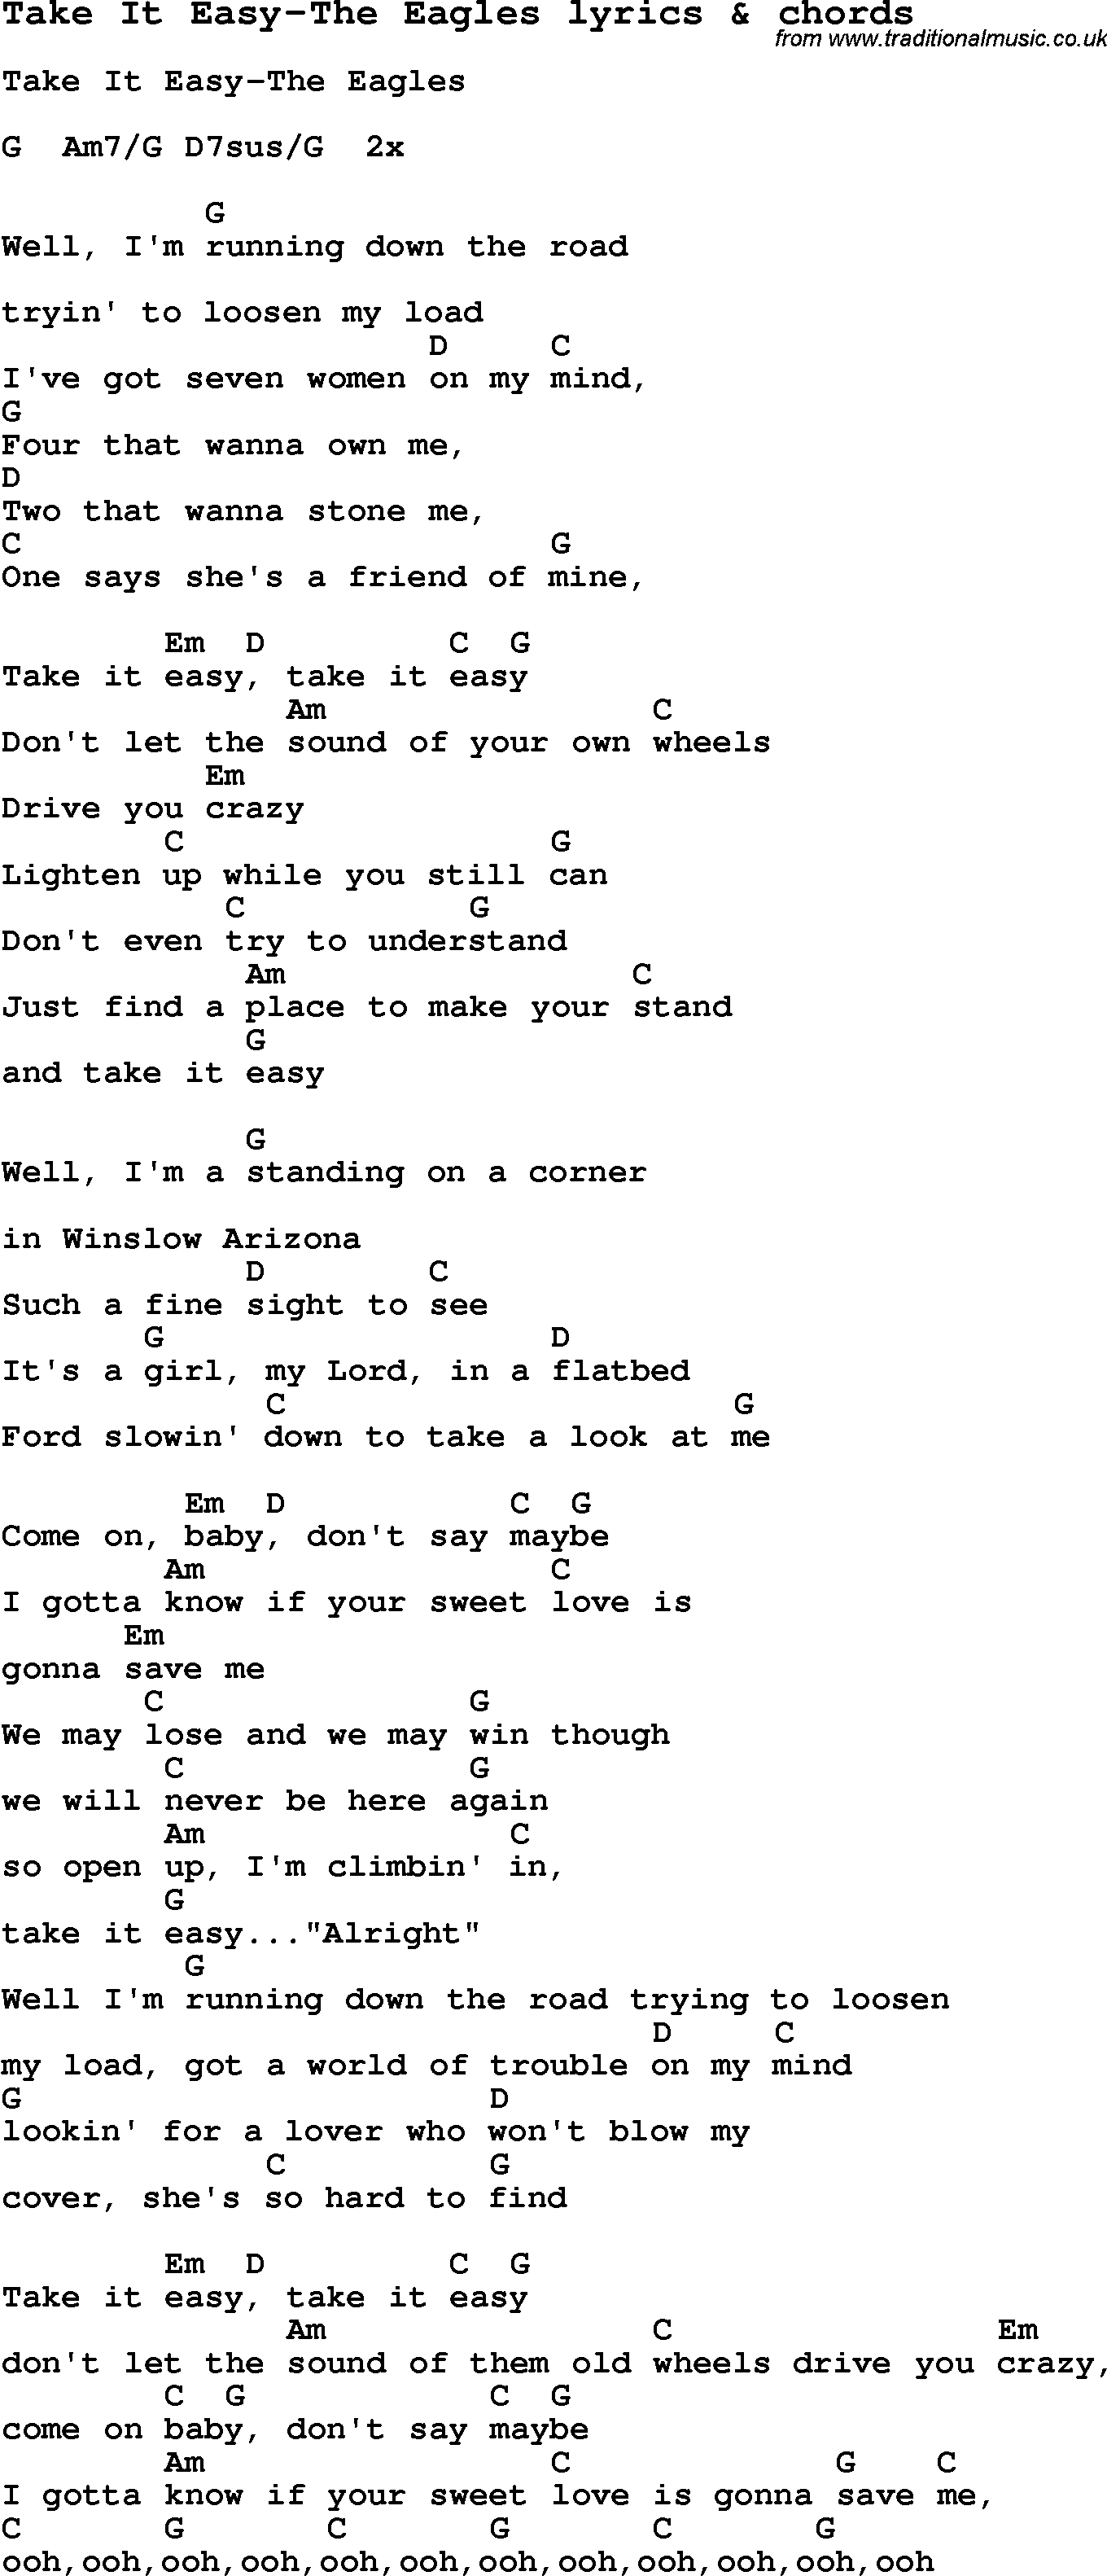 Take It Easy Chords Love Song Lyrics Fortake It Easy The Eagles With Chords